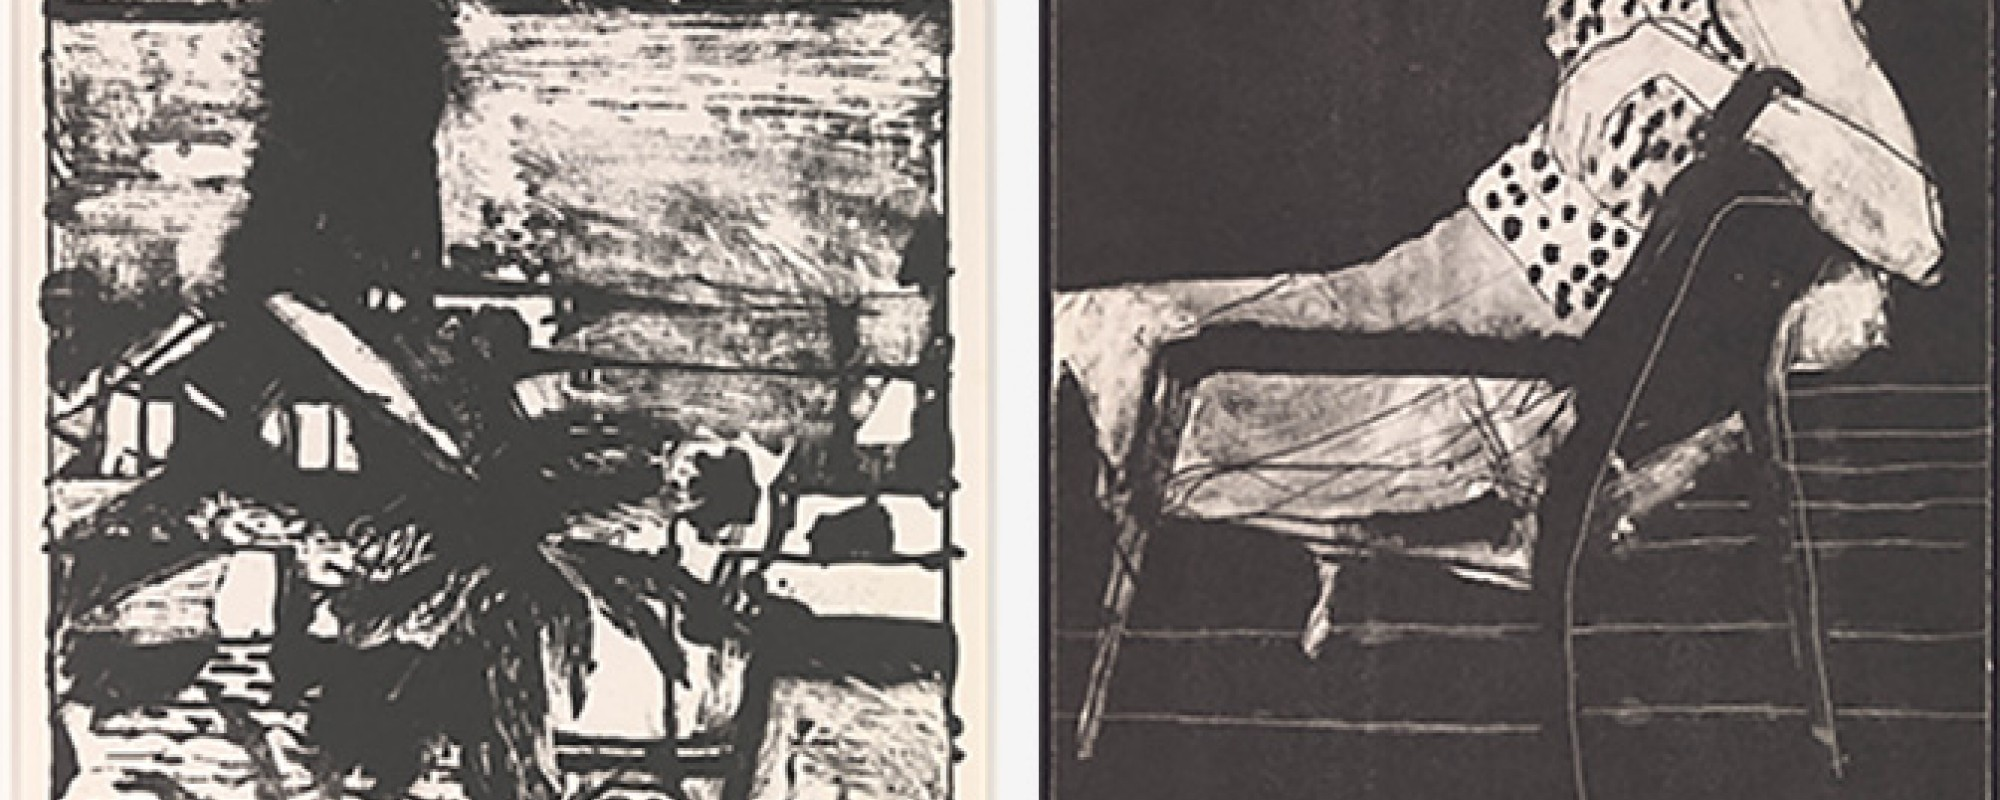 L: Richard Diebenkorn, Seascape, 1962. Lithograph. FAMSF, Foundation purchase, Phyllis C. Wattis Fund for Major Accessions. © 2015 The Richard Diebenkorn Foundation; R: Richard Diebenkorn, Seated Woman Wearing Polka-Dot Blouse, 1967. Lithograph. FAMSF, Foundation purchase, Phyllis C. Wattis Fund for Major Accessions. © 2015 The Richard Diebenkorn Foundation